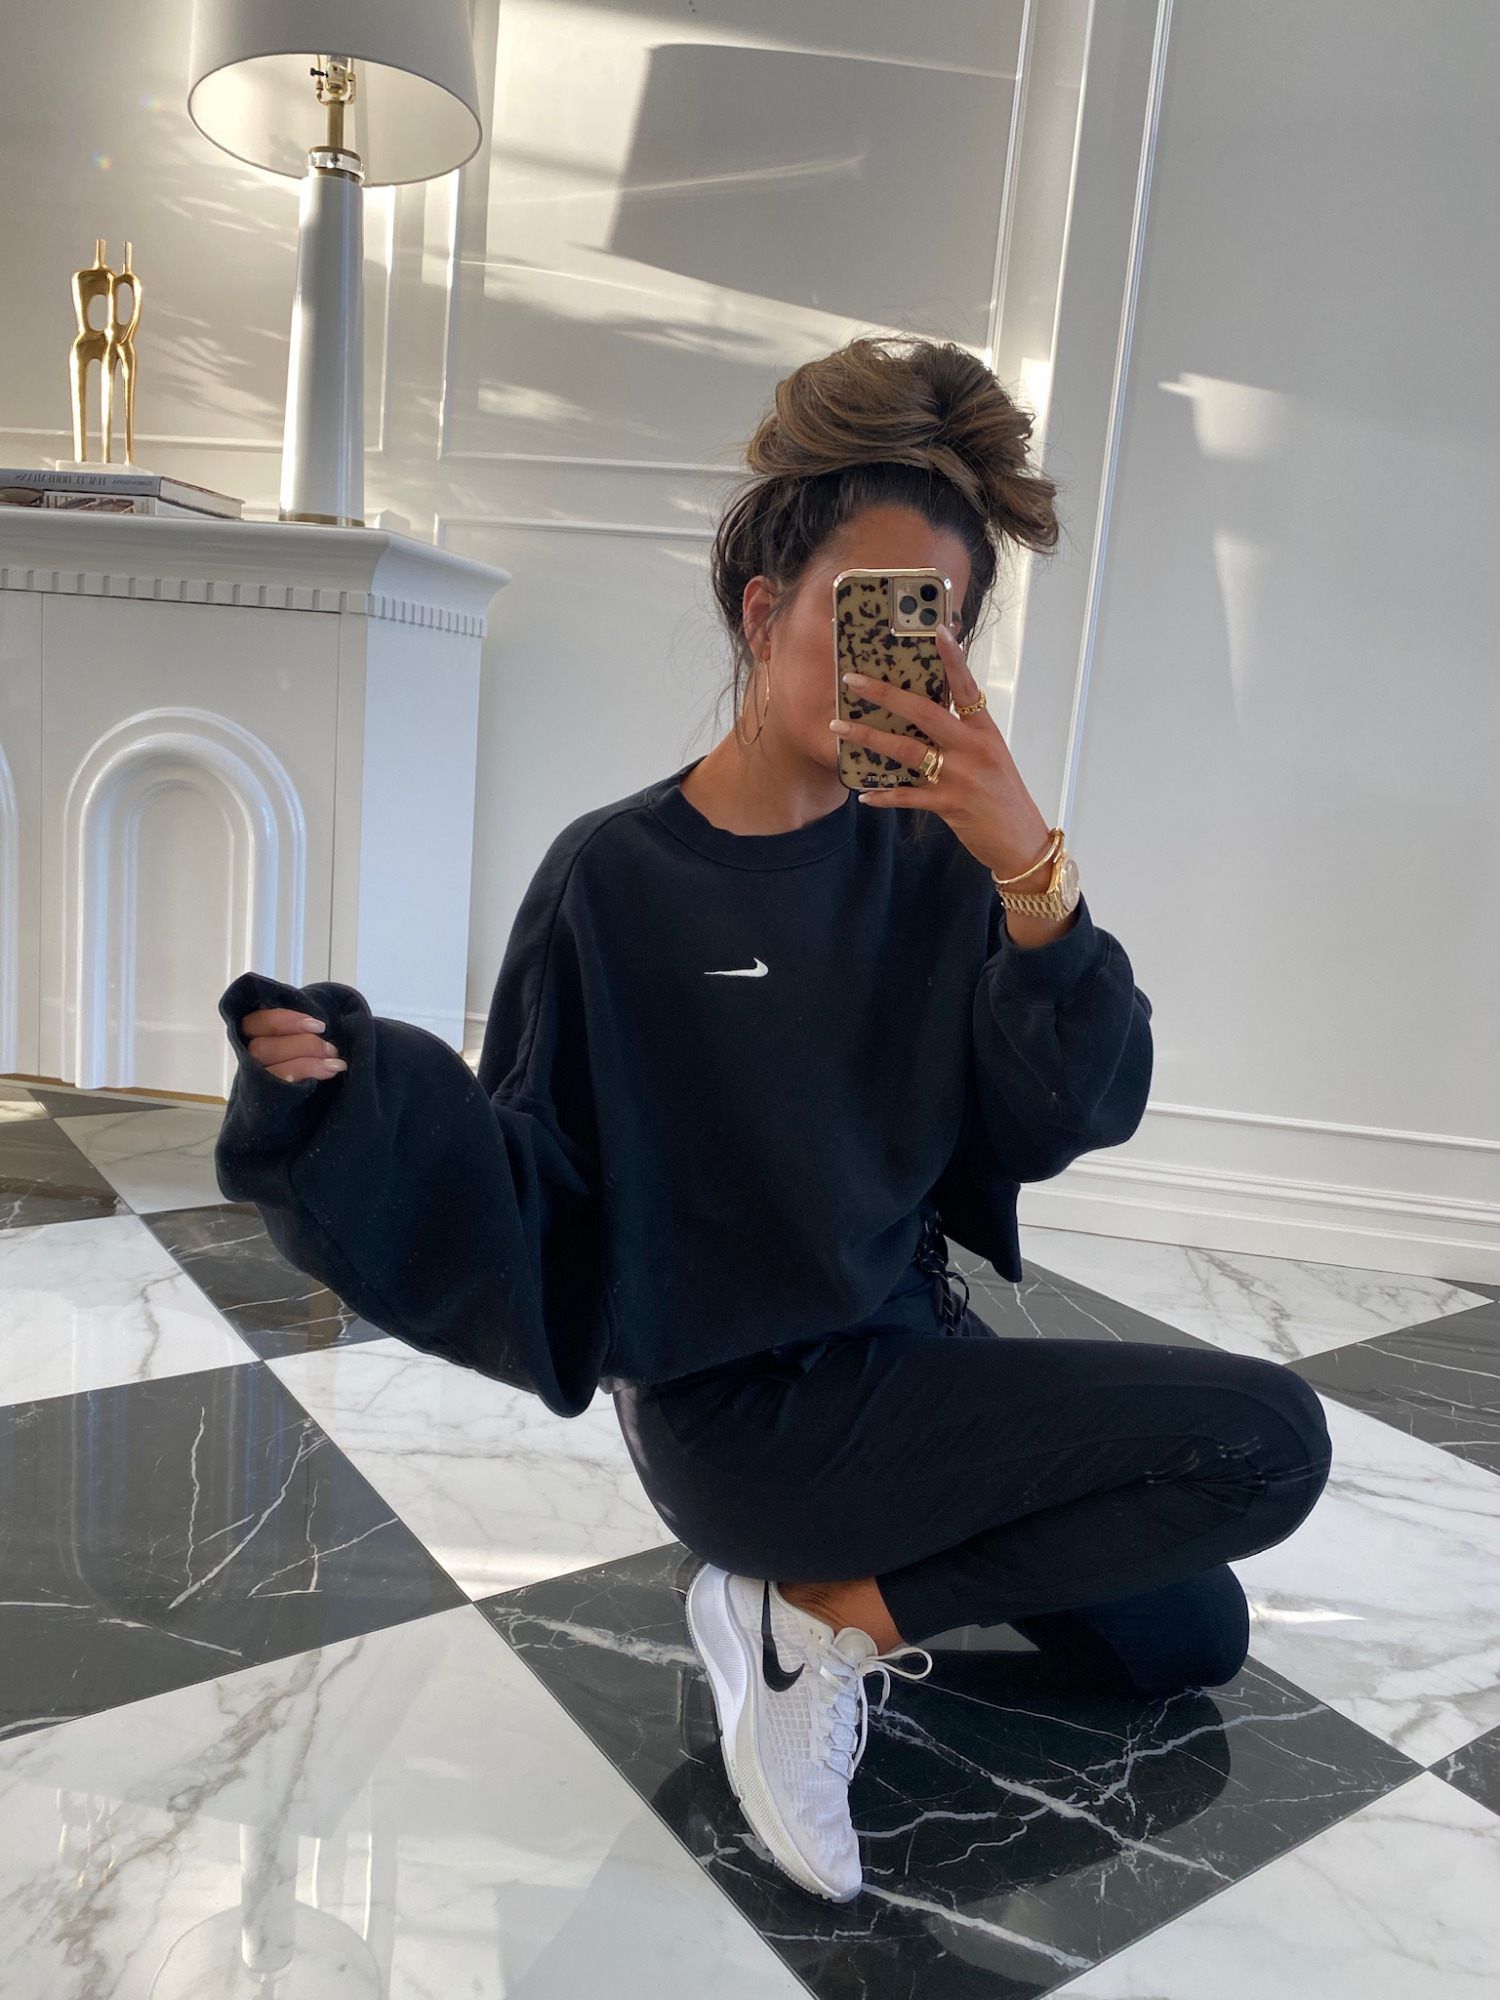 Nordstrom Anniversary Sale 2021 favorites by top US fashion blogger, The Sweetest Thing. | Nordstrom Anniversary Sale by popular US fashion blog, The Sweetest Thing: image of Emily Gemma wearing a black Nike sweatshirt, black joggers, and grey Nike sneakers.